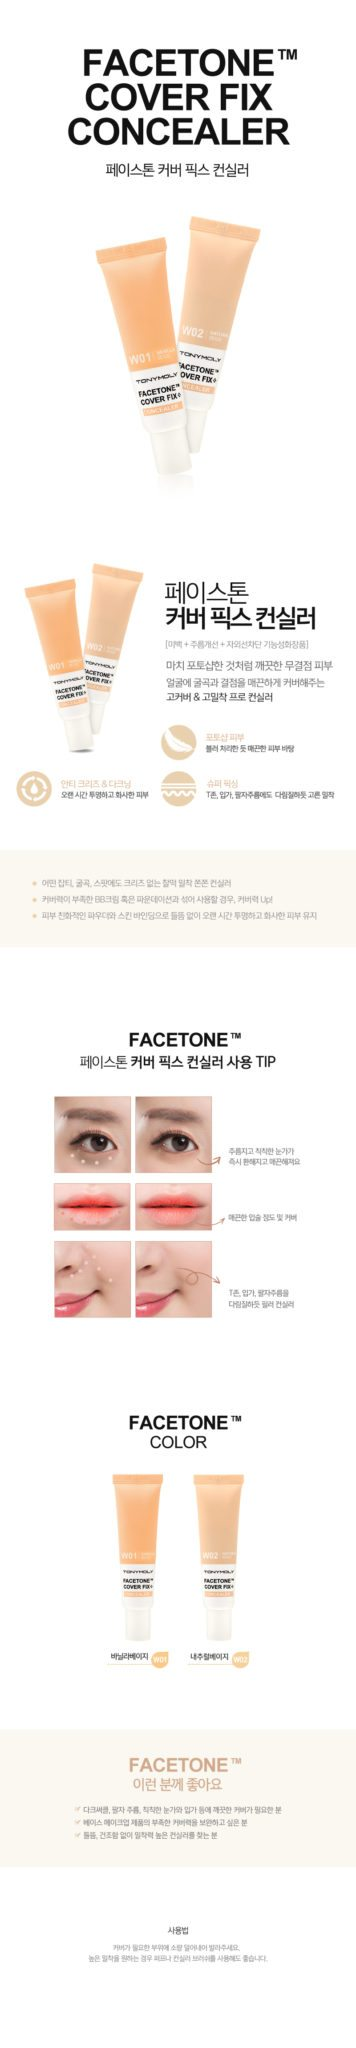 Tonymoly Facetone Cover Fix Concealer Spf 30 Seoul Next